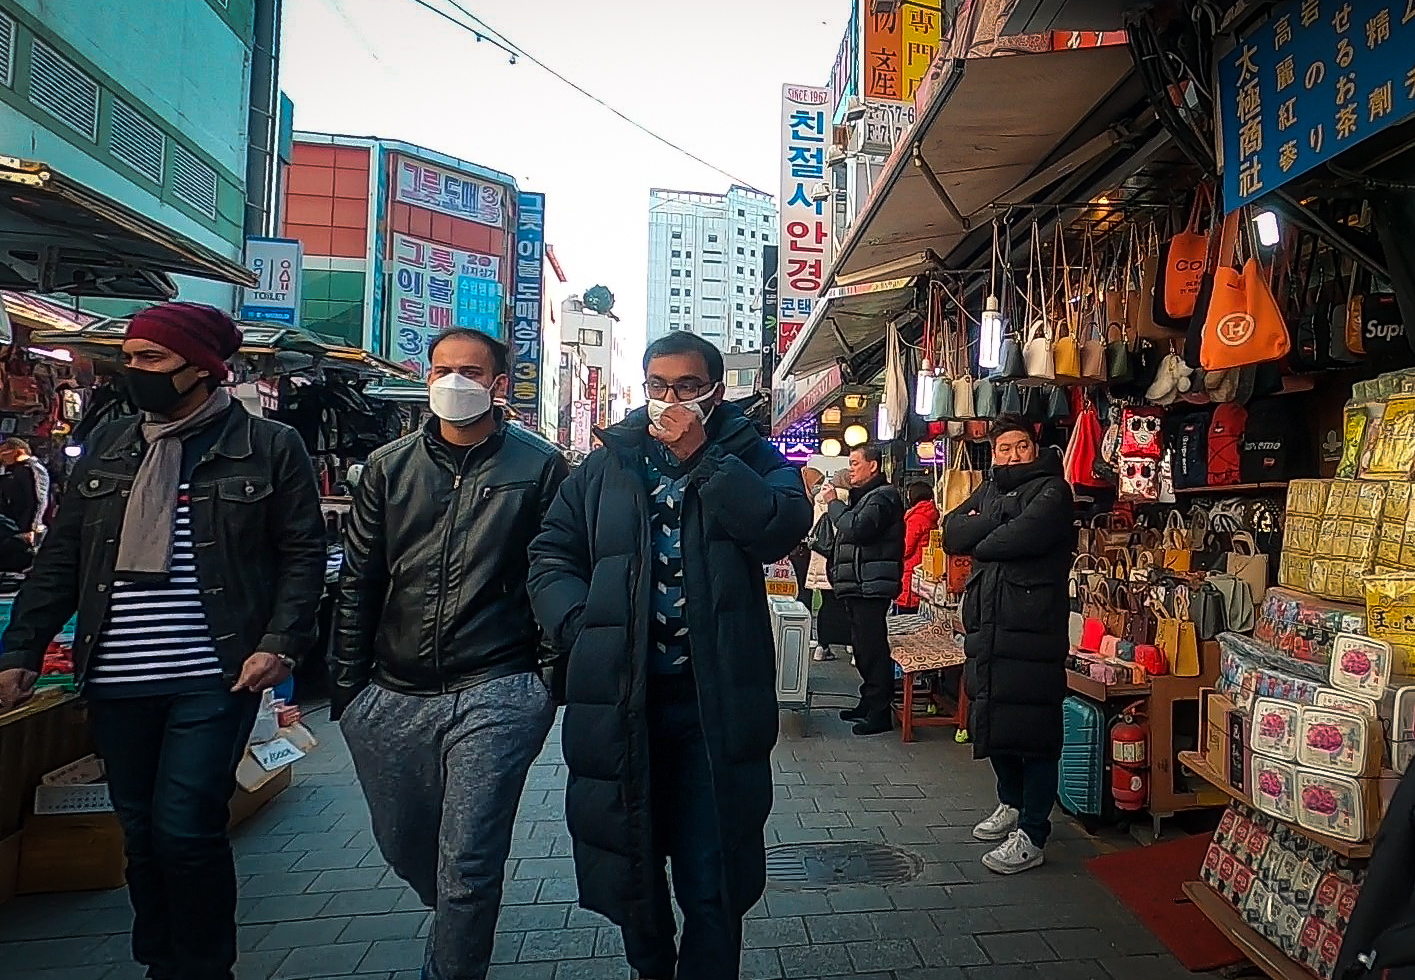 Tourists to South Korea are sure to stay wear masks in public. While tourism might not have taken a large hit yet, many expect airlines to cut flights to South Korea in the near future.